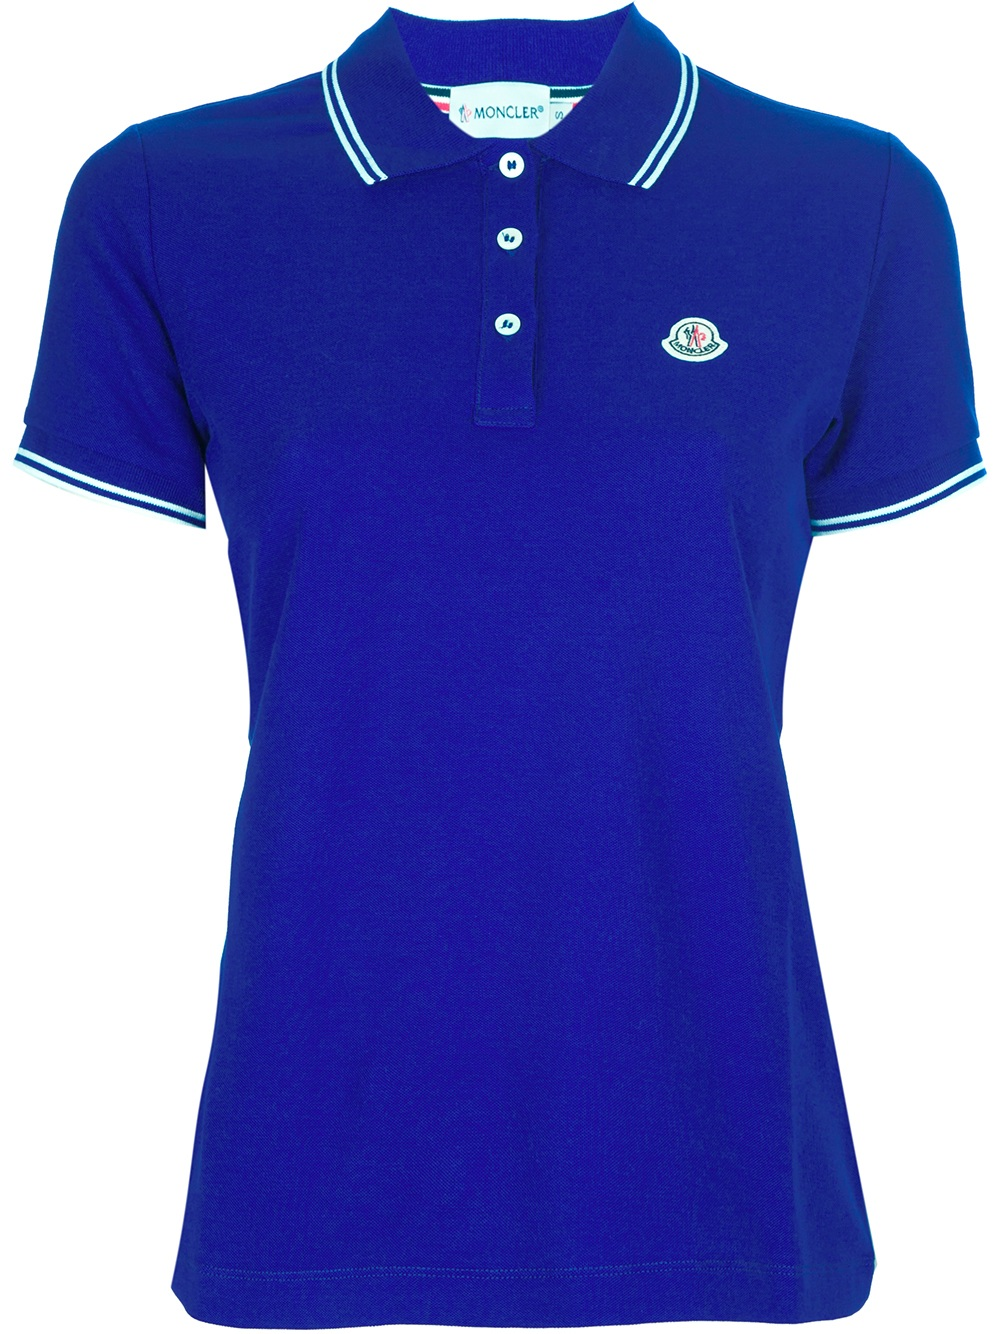 Moncler Polo Shirt In Blue Lyst